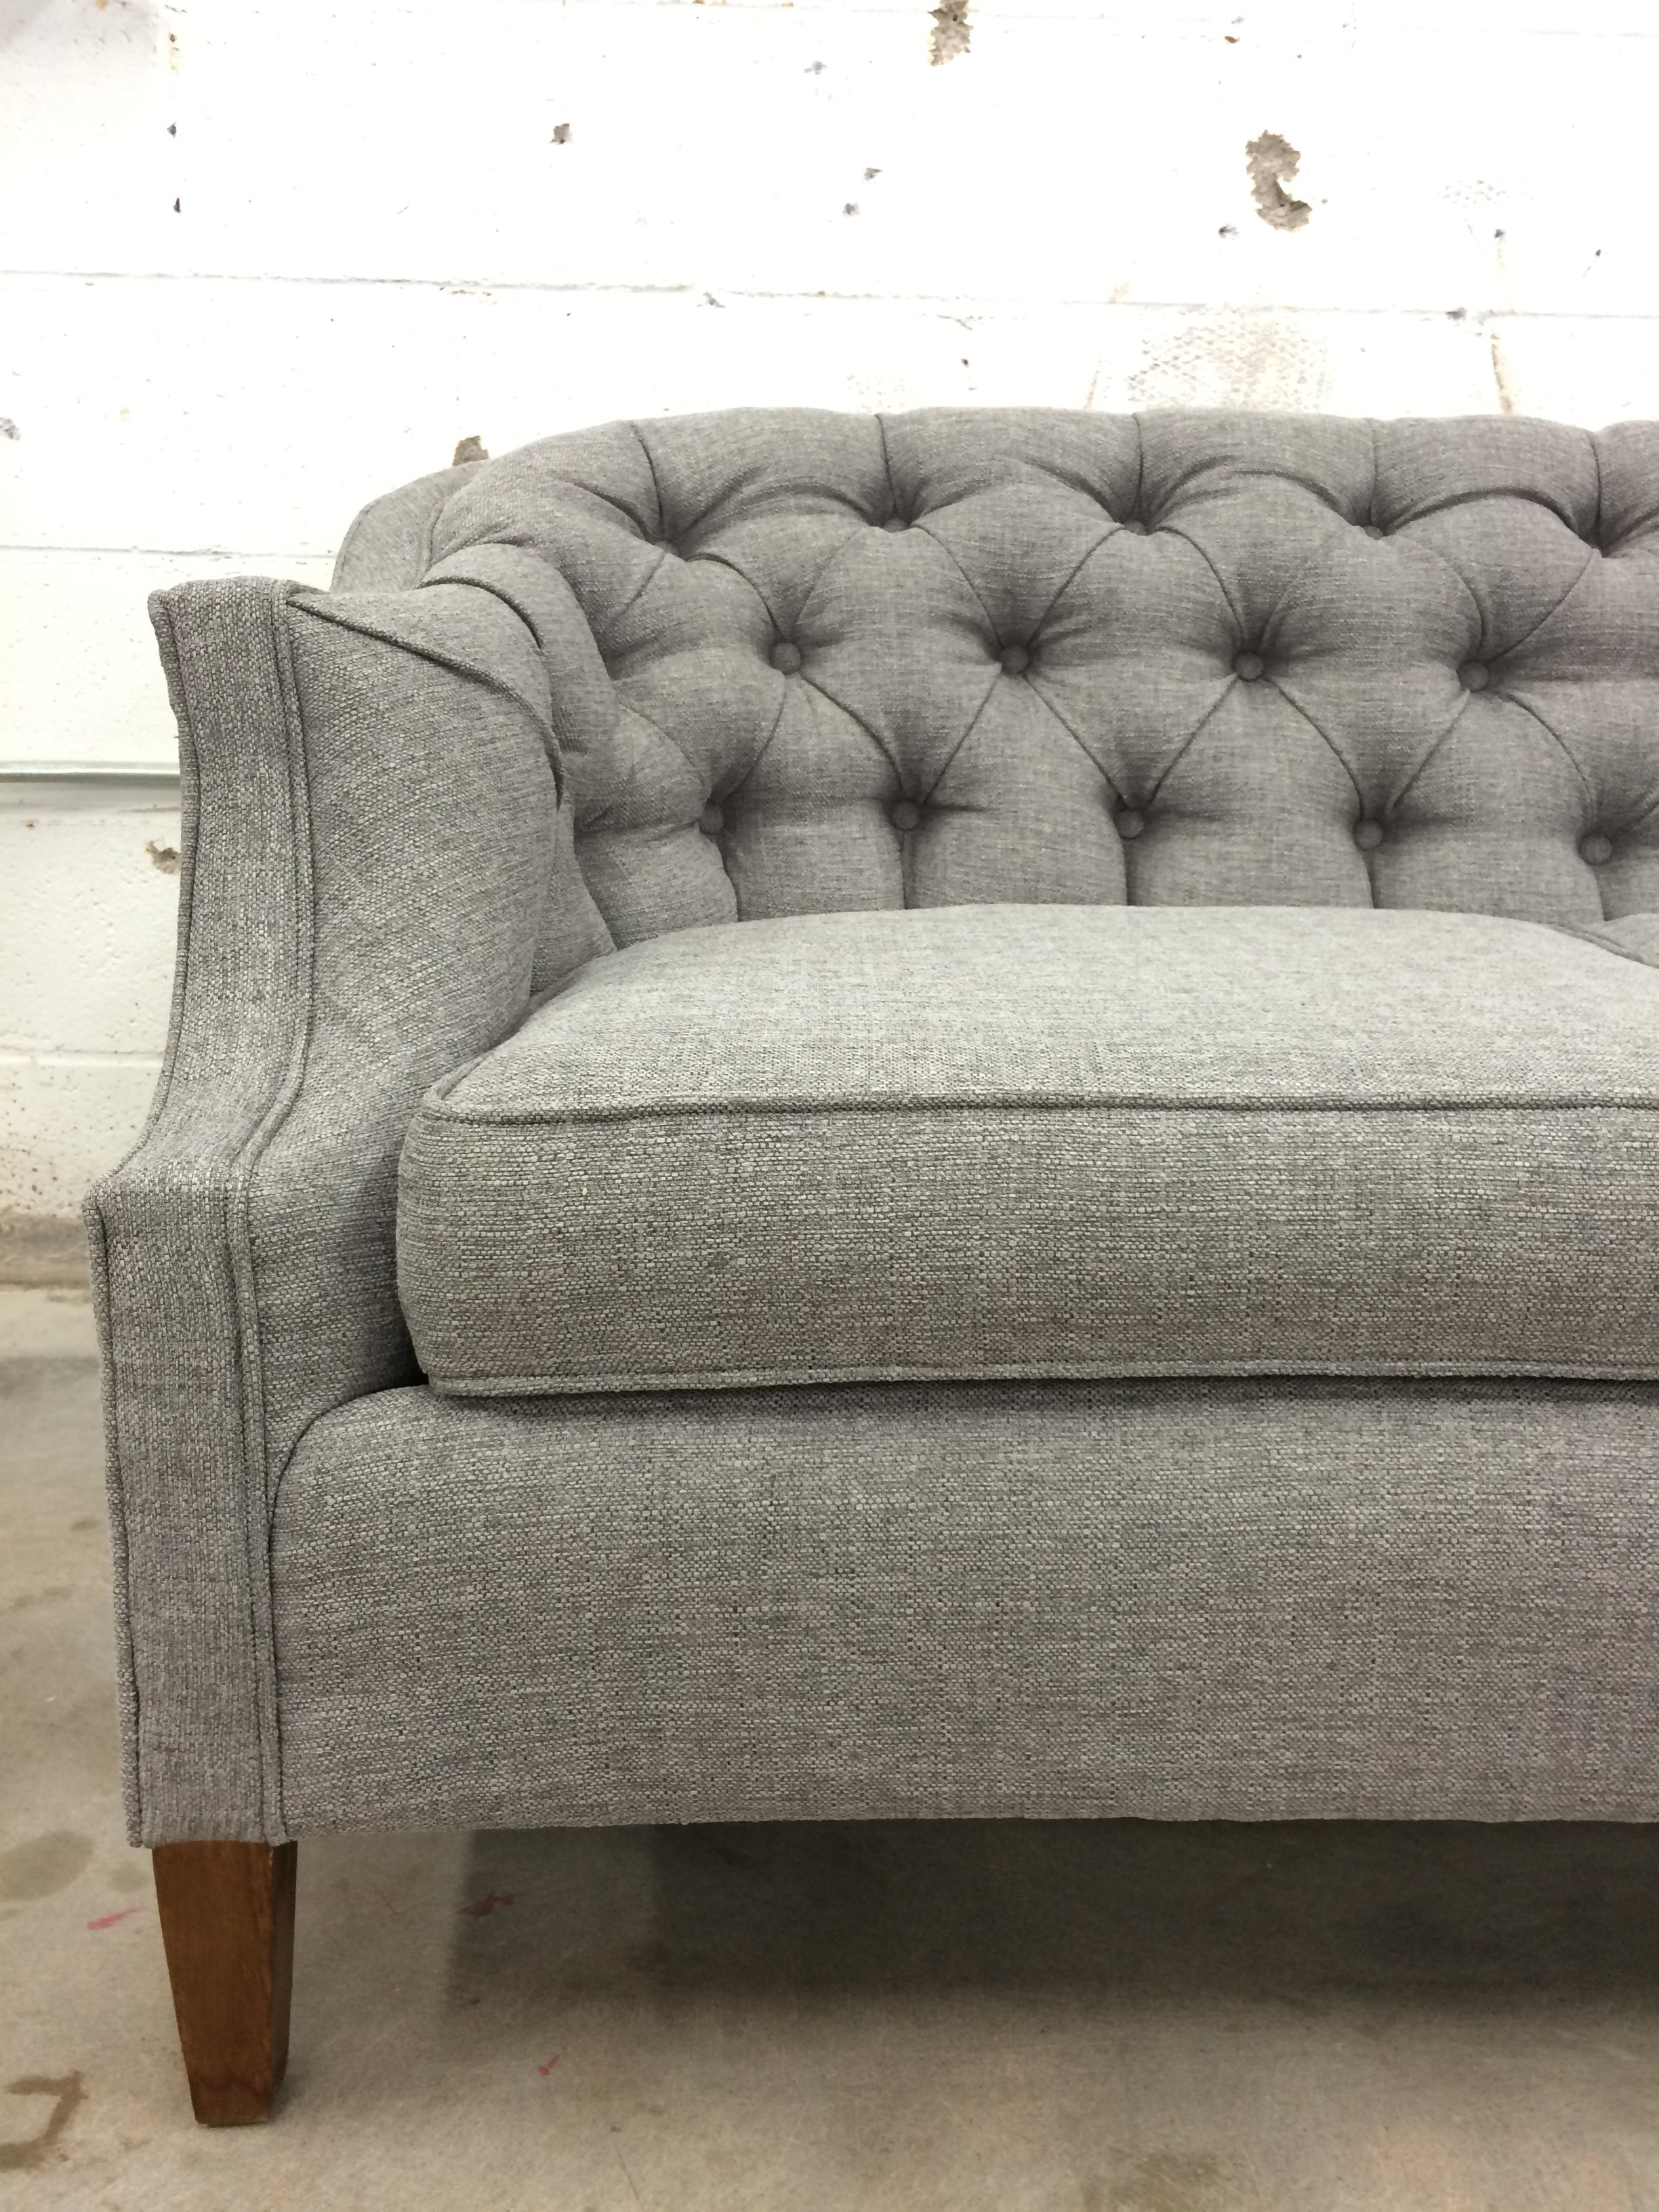 Vintage Couch Before After Vintage Tufted Sofa Goes From Skirted To Stunning